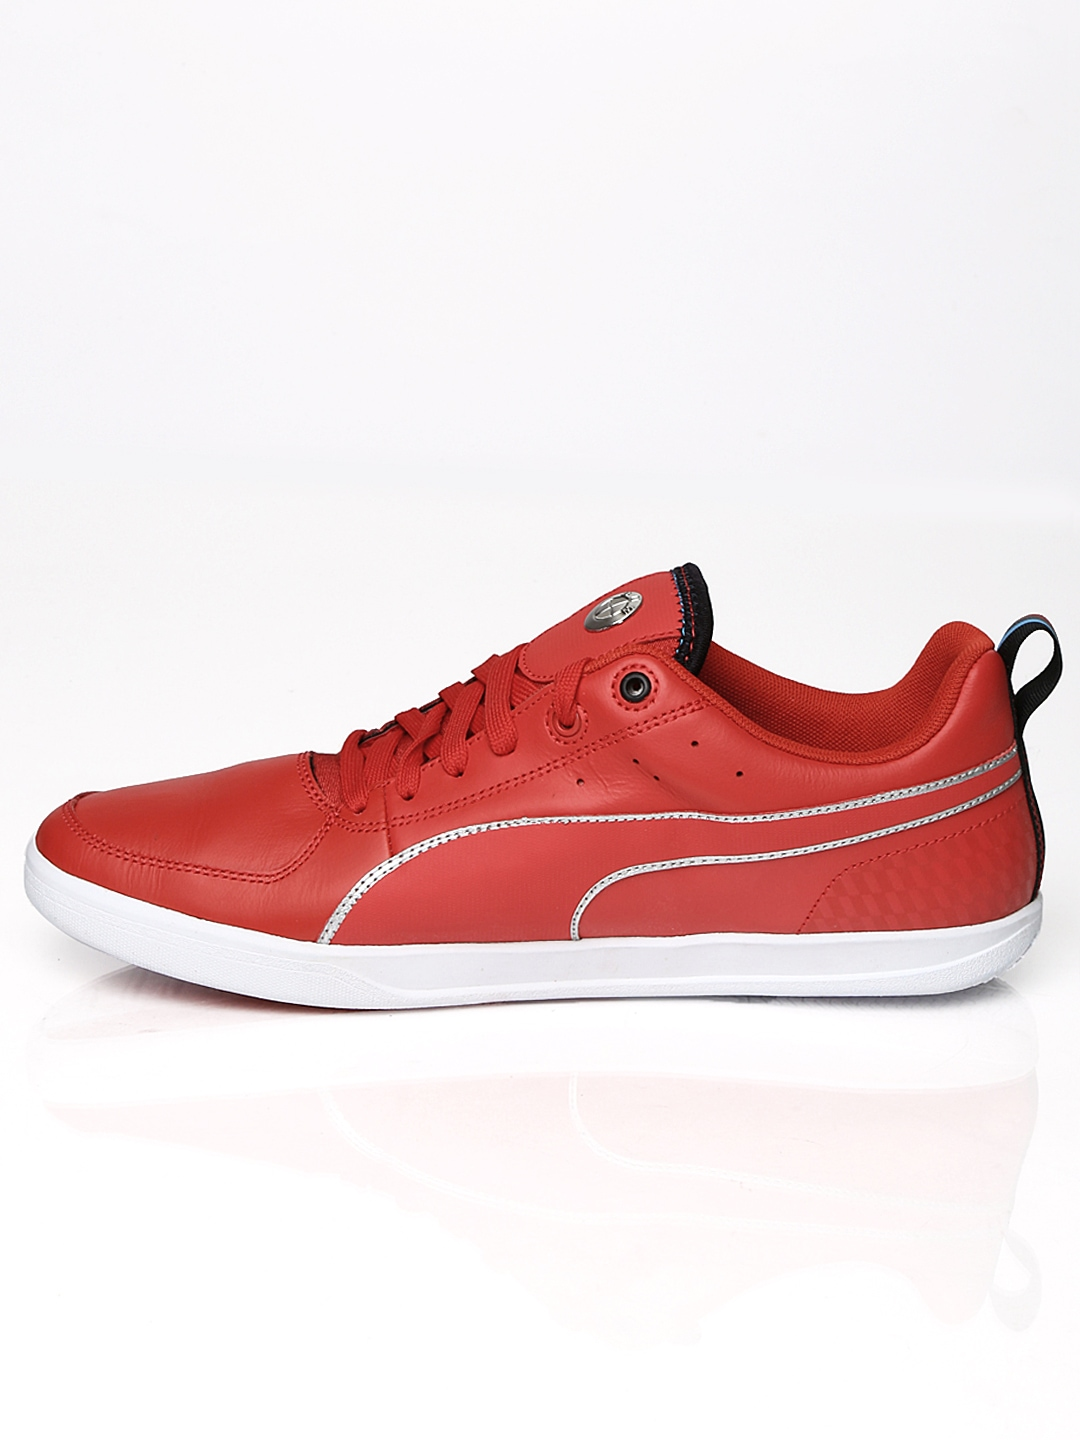 Puma Shoes Best Price